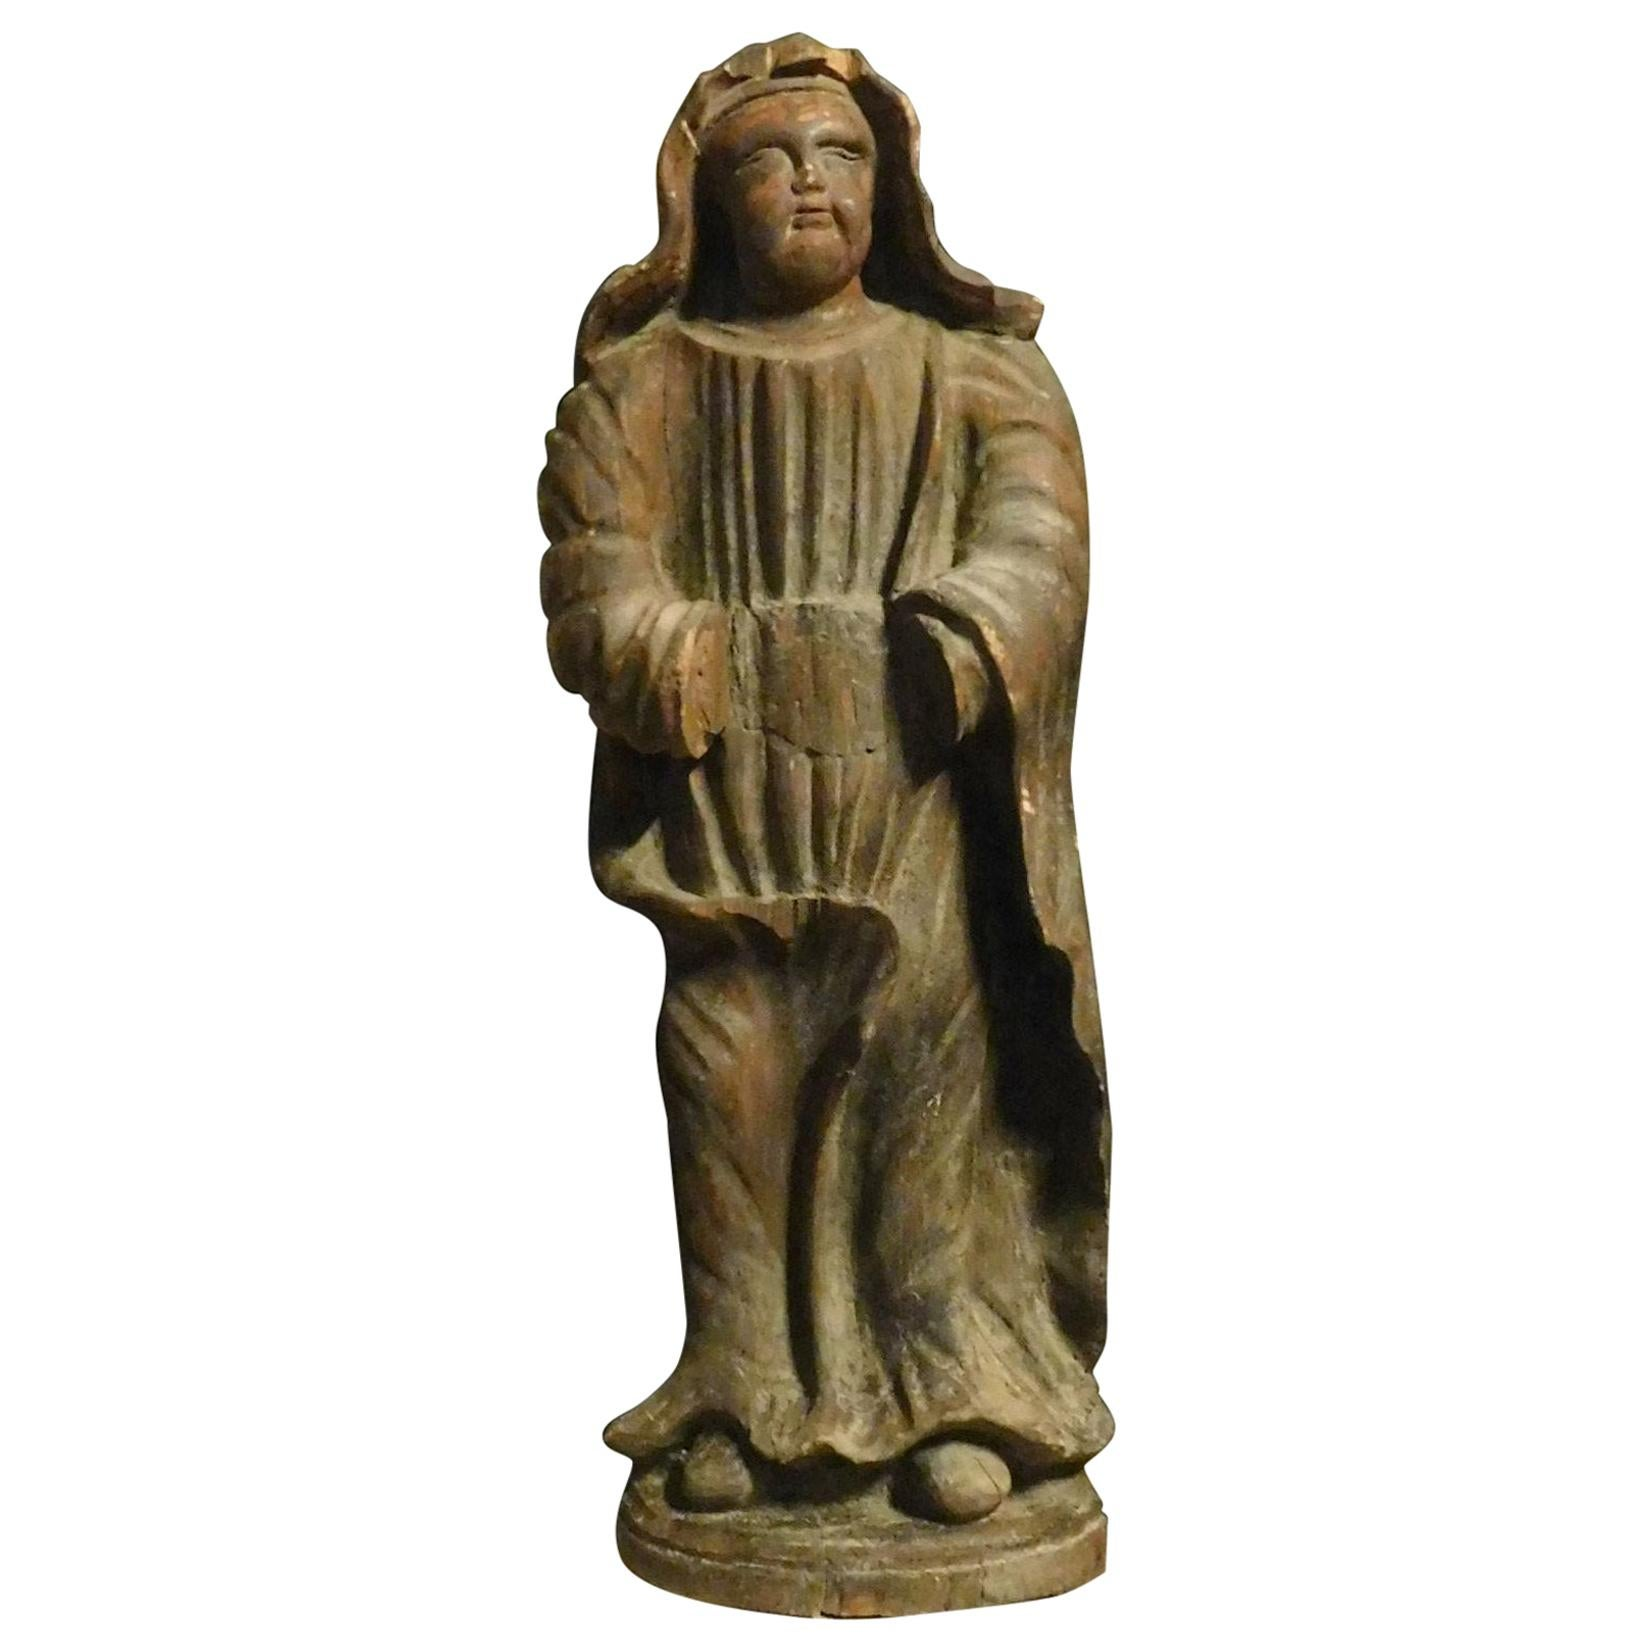 Antique Statue Sculpture, Wood Figurine Depicting Mystical Character, 1600 Italy